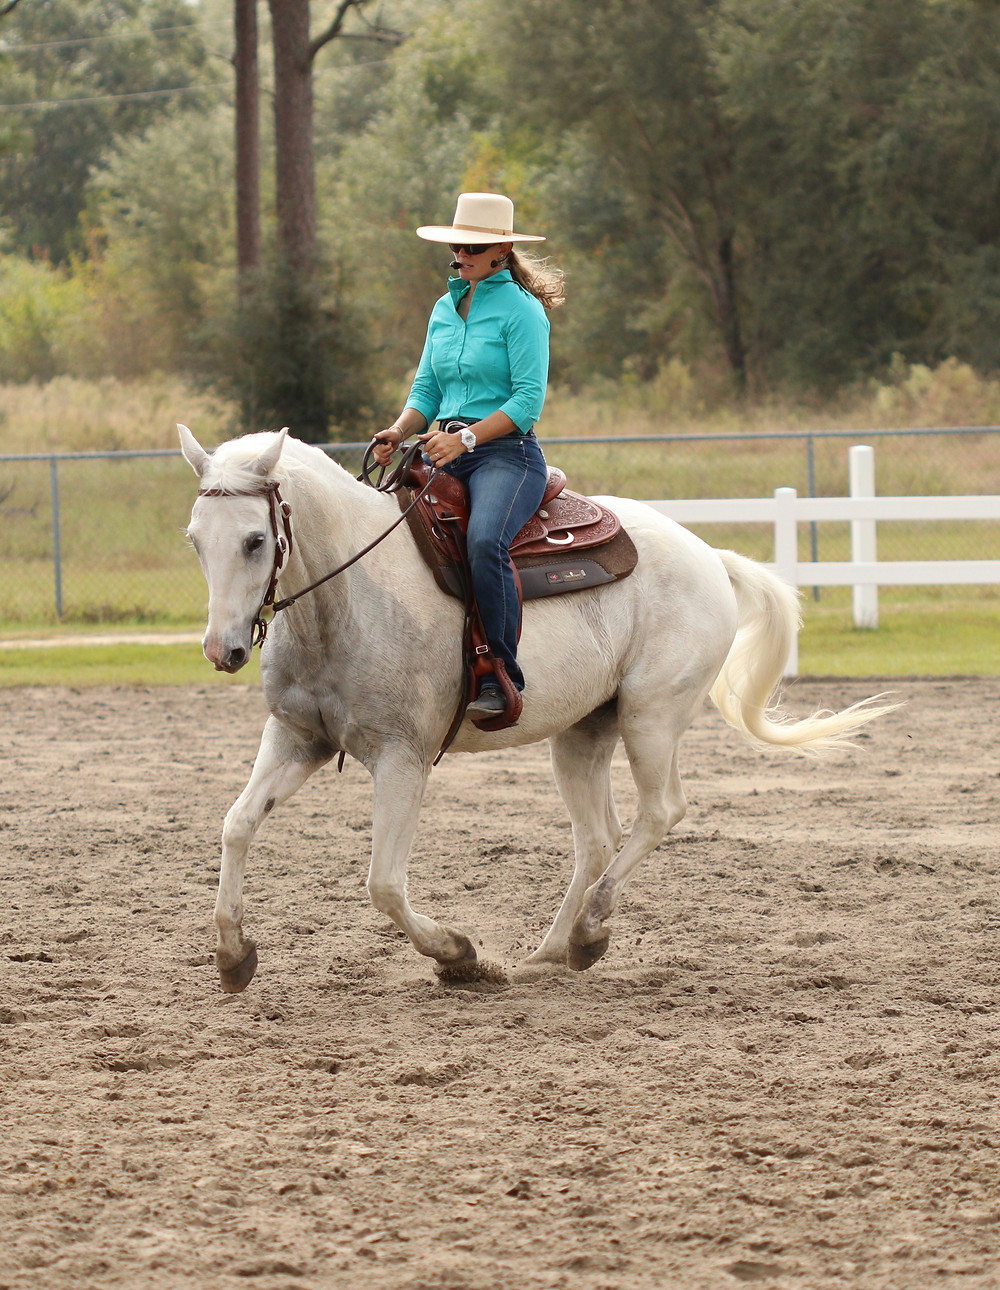 Dressage Style: collected rein, upright posture, requires horse to focus intently on rider's positoin and movemets